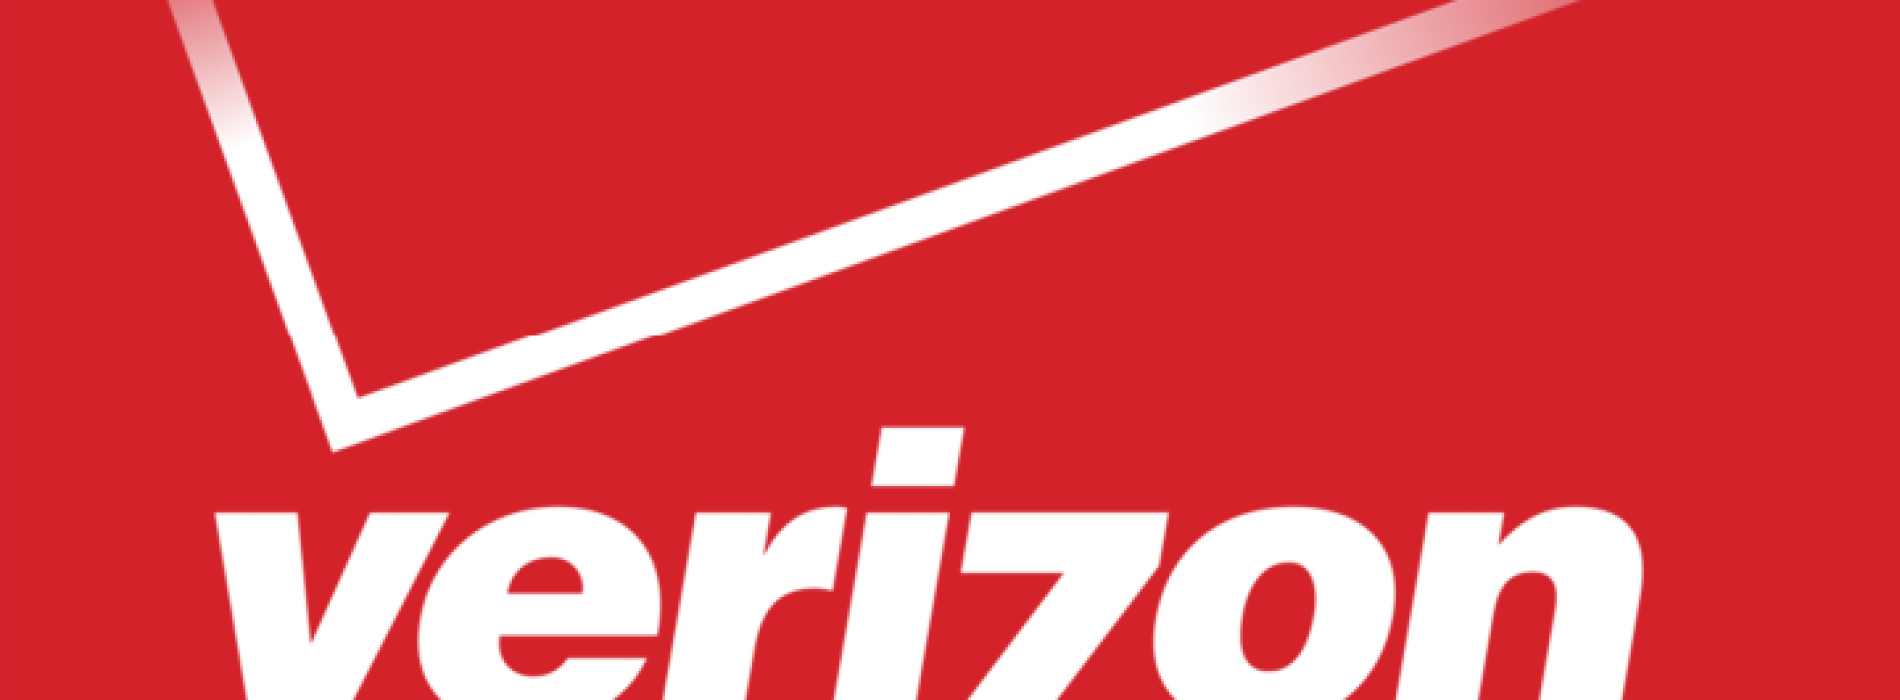 Verizon announces Android 4.2.2 for Galaxy Nexus